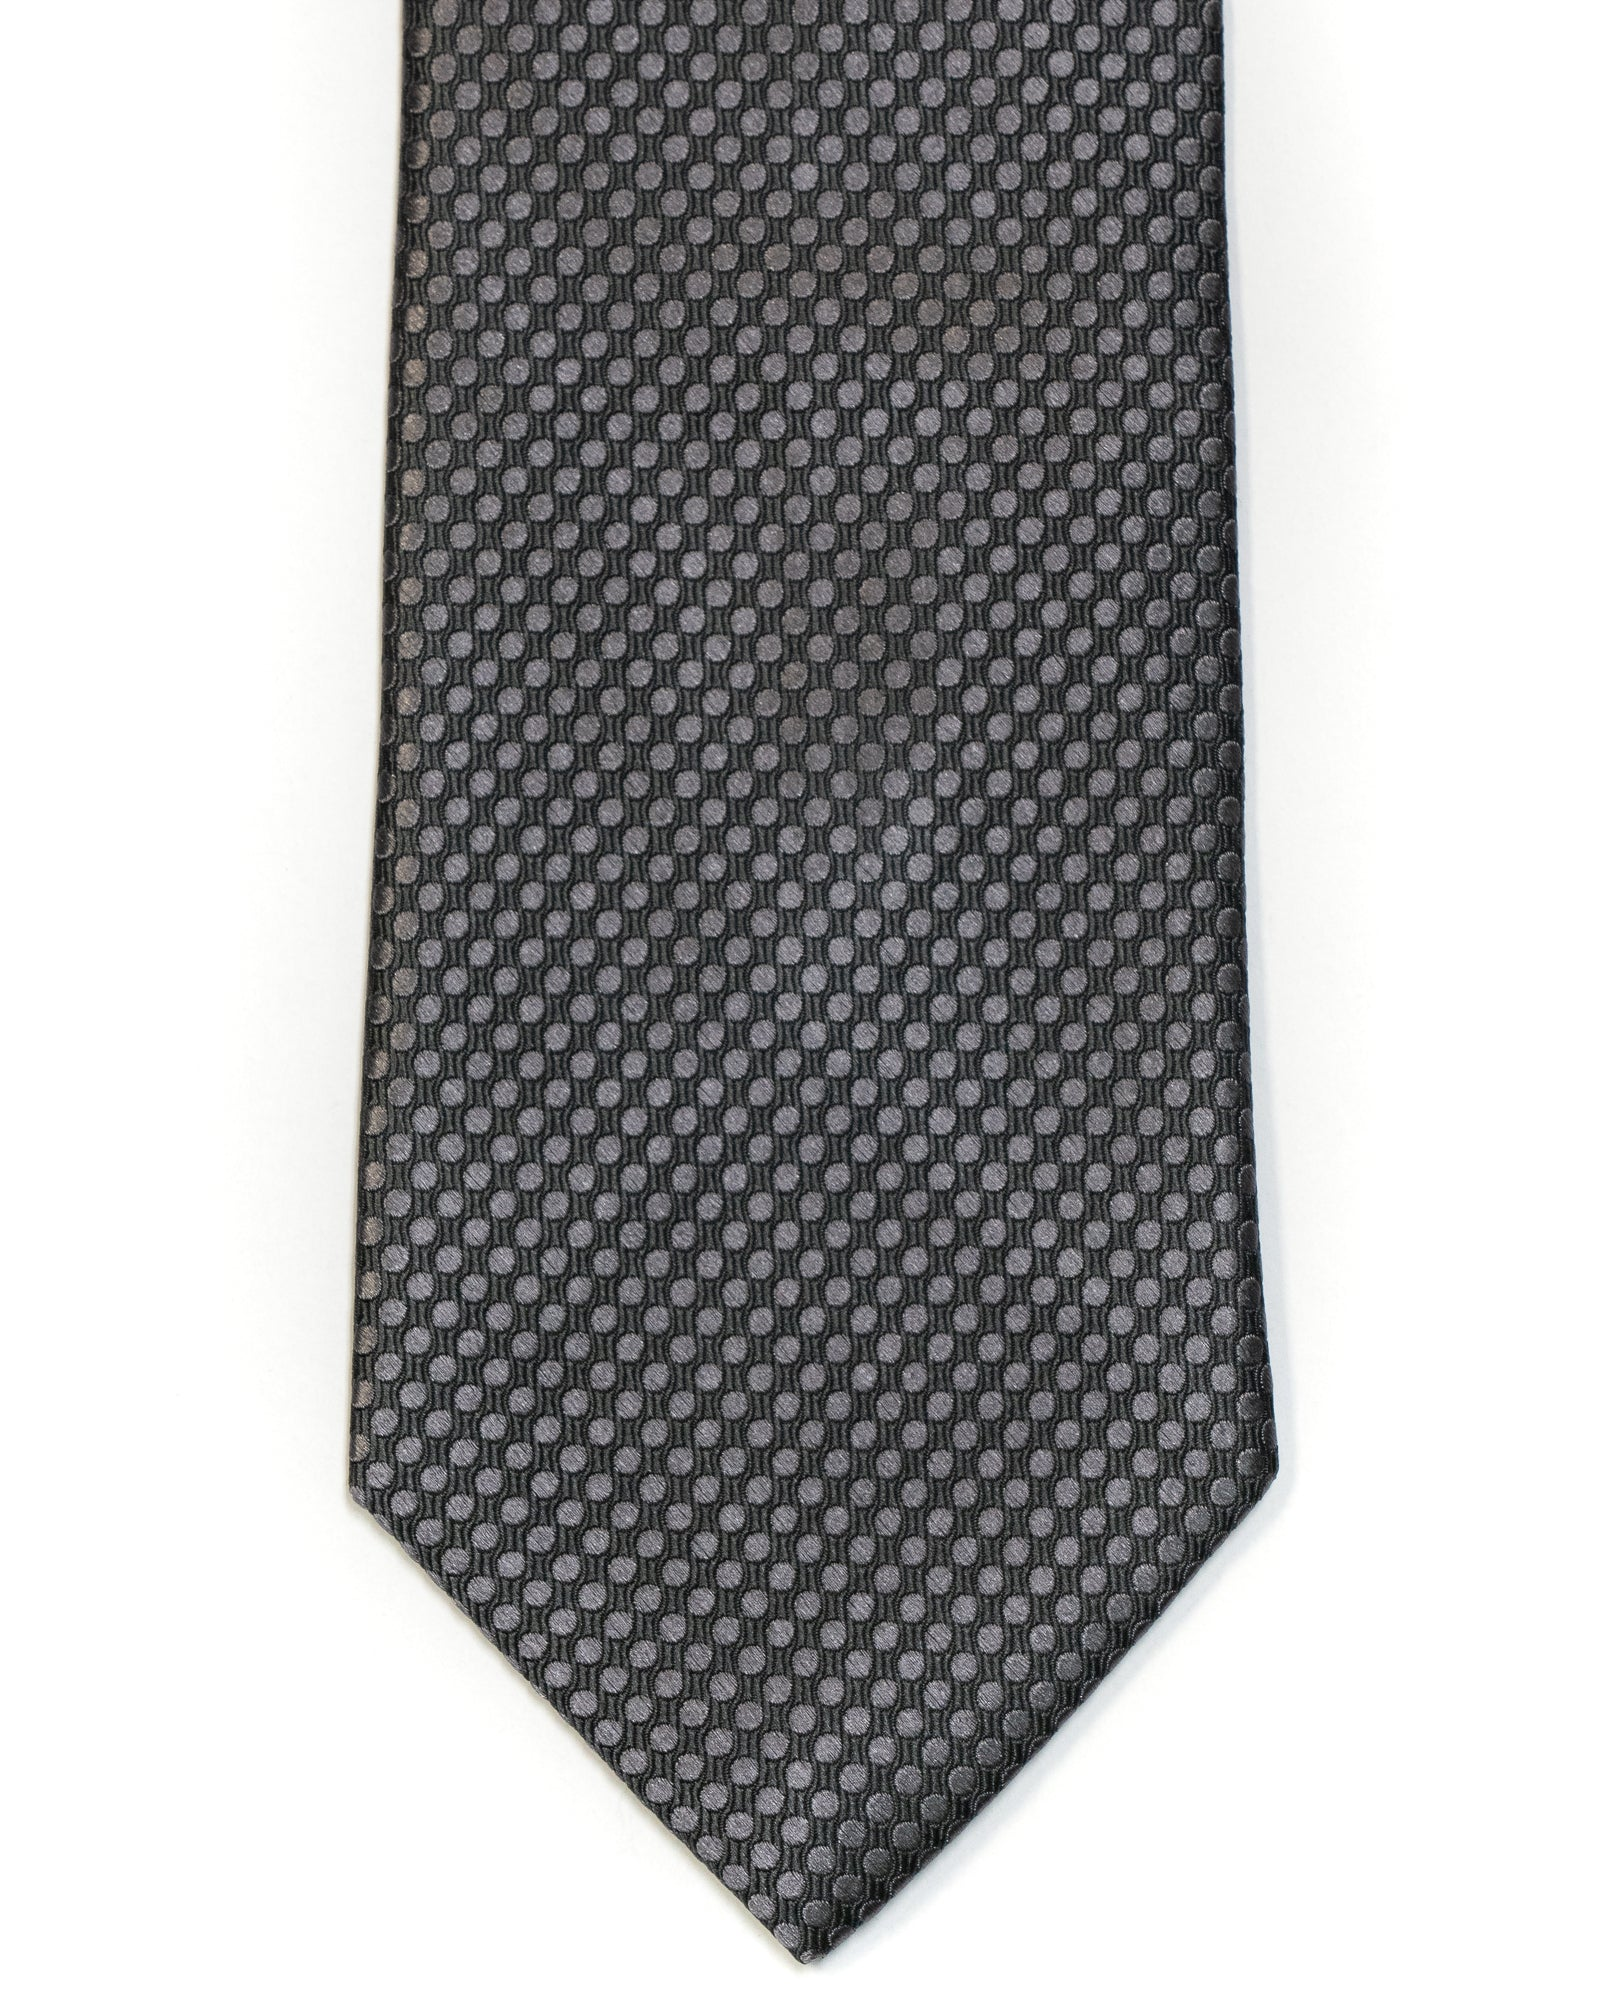 Silk Tie In Slate Grey Circle Jacquard Design Solid - Rainwater's Men's Clothing and Tuxedo Rental